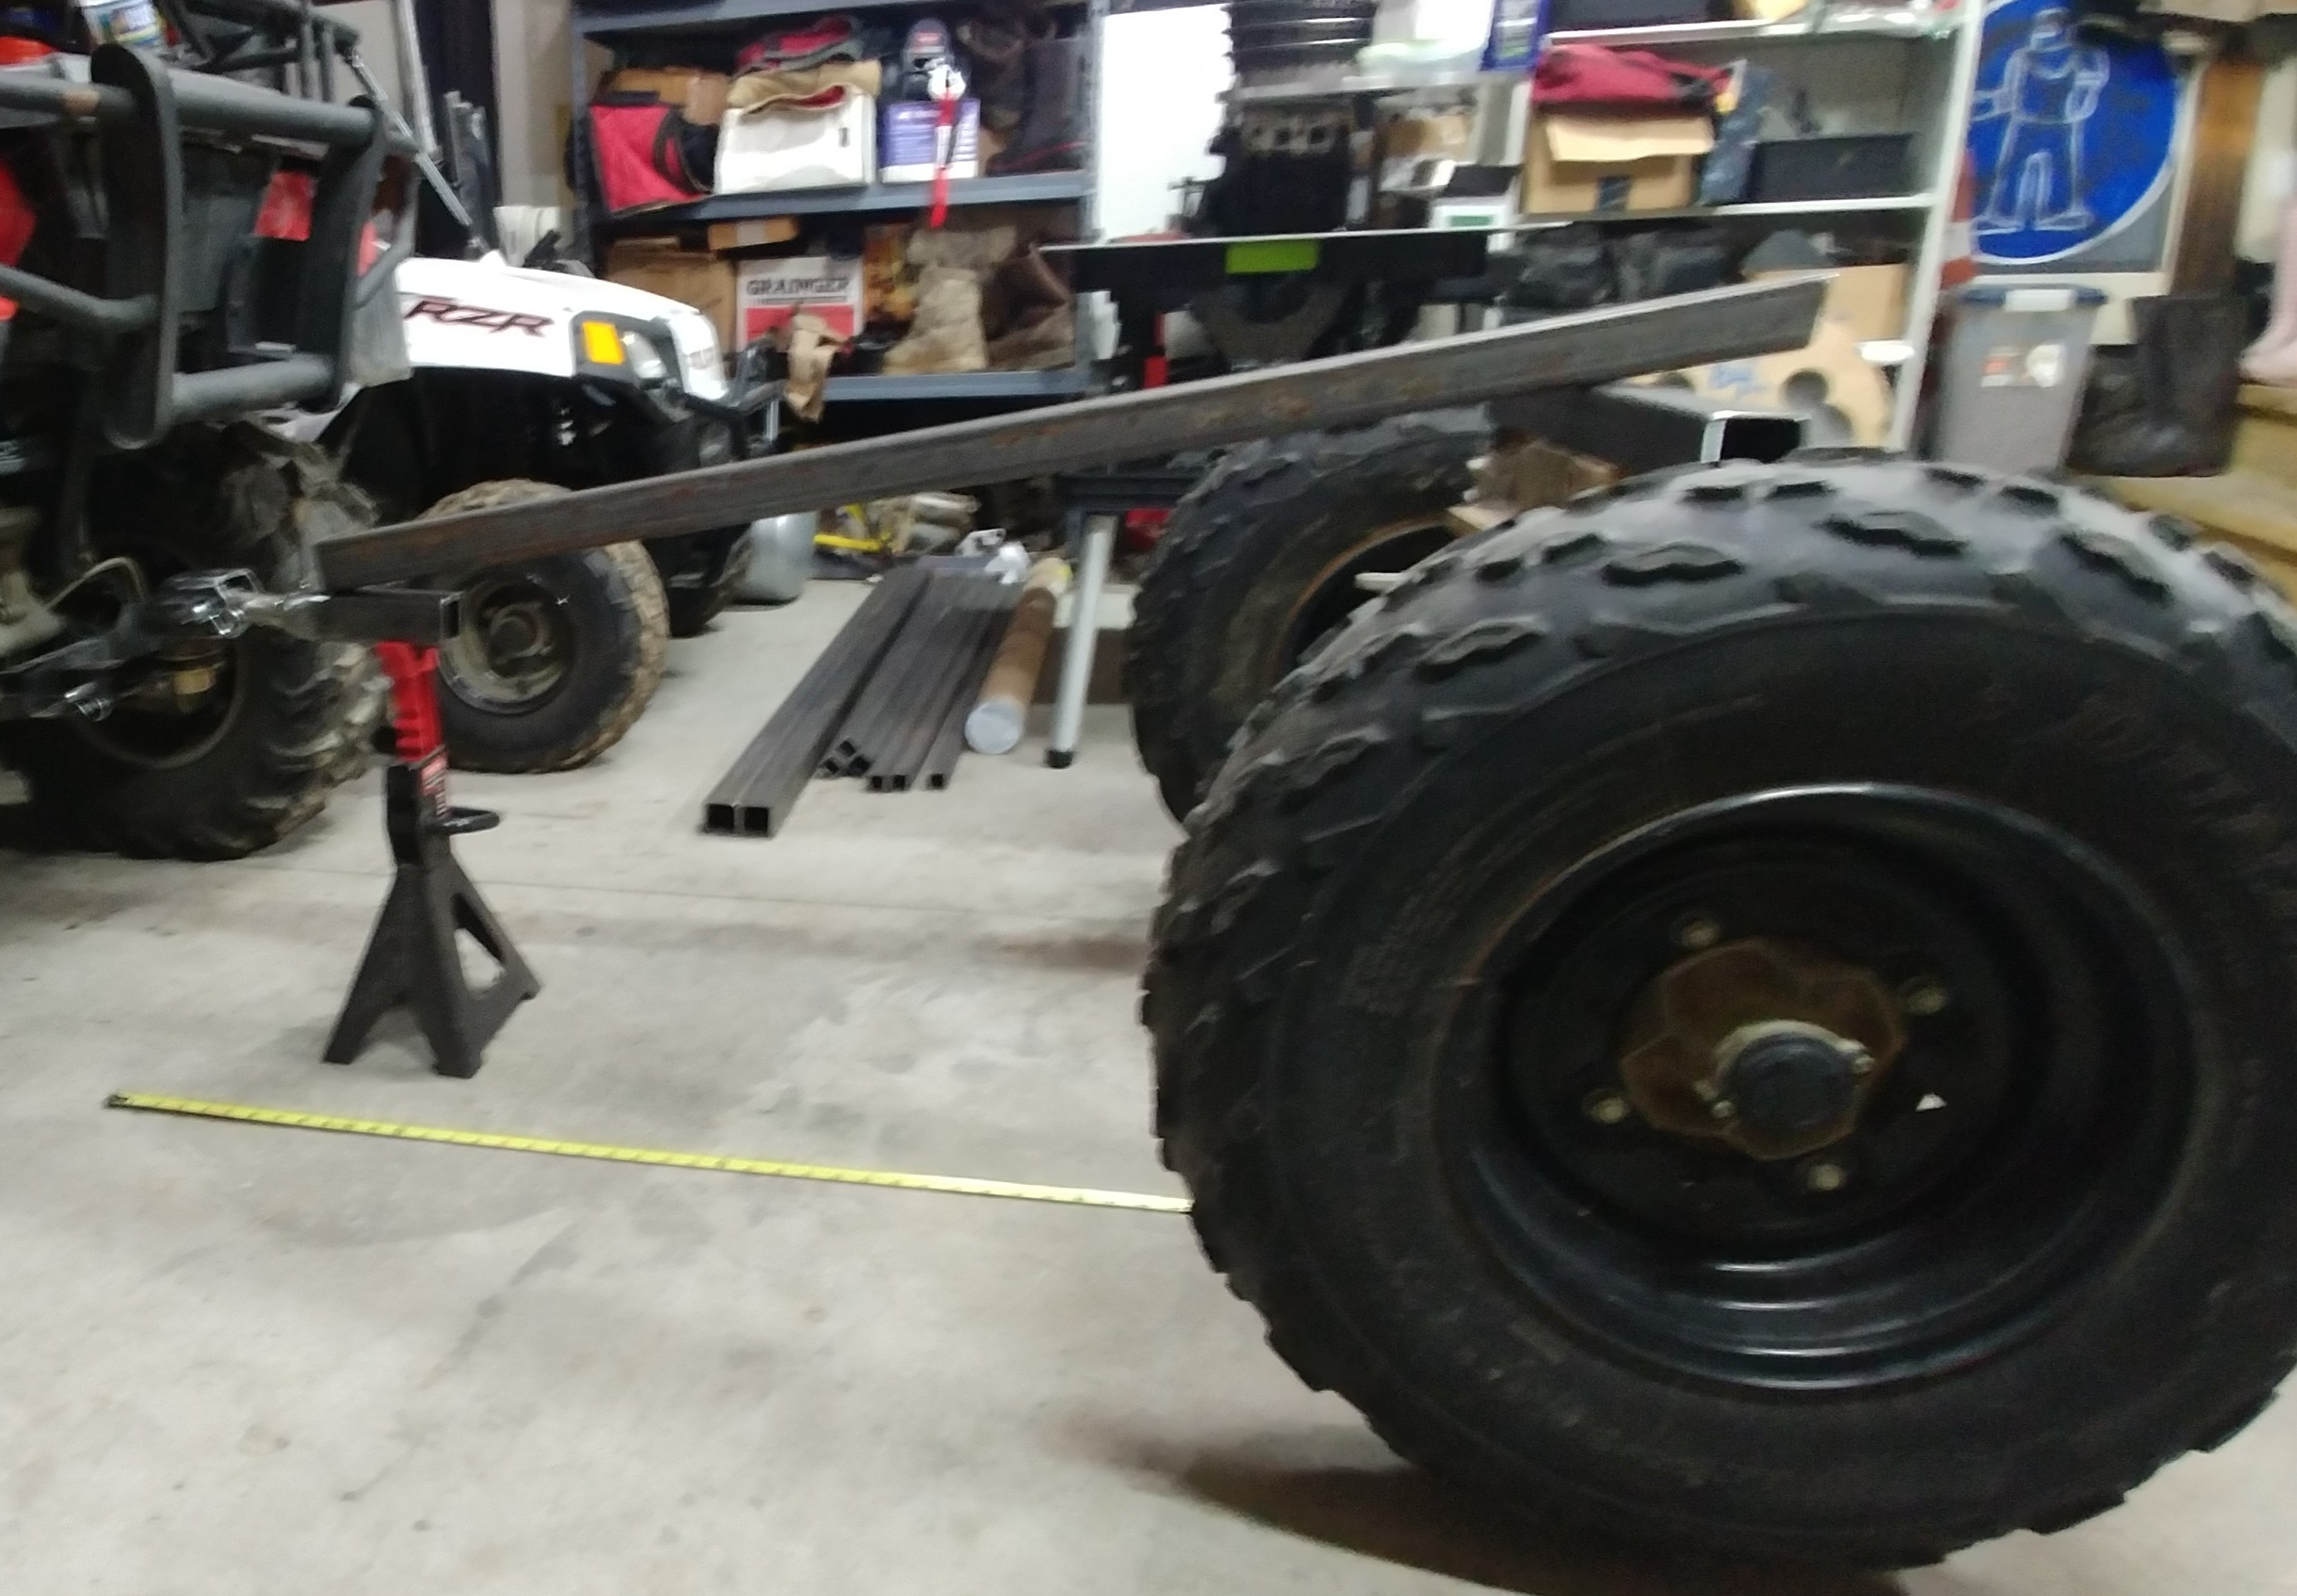 Off-road Trailer Build Using Polaris parts-1125181713b.jpg